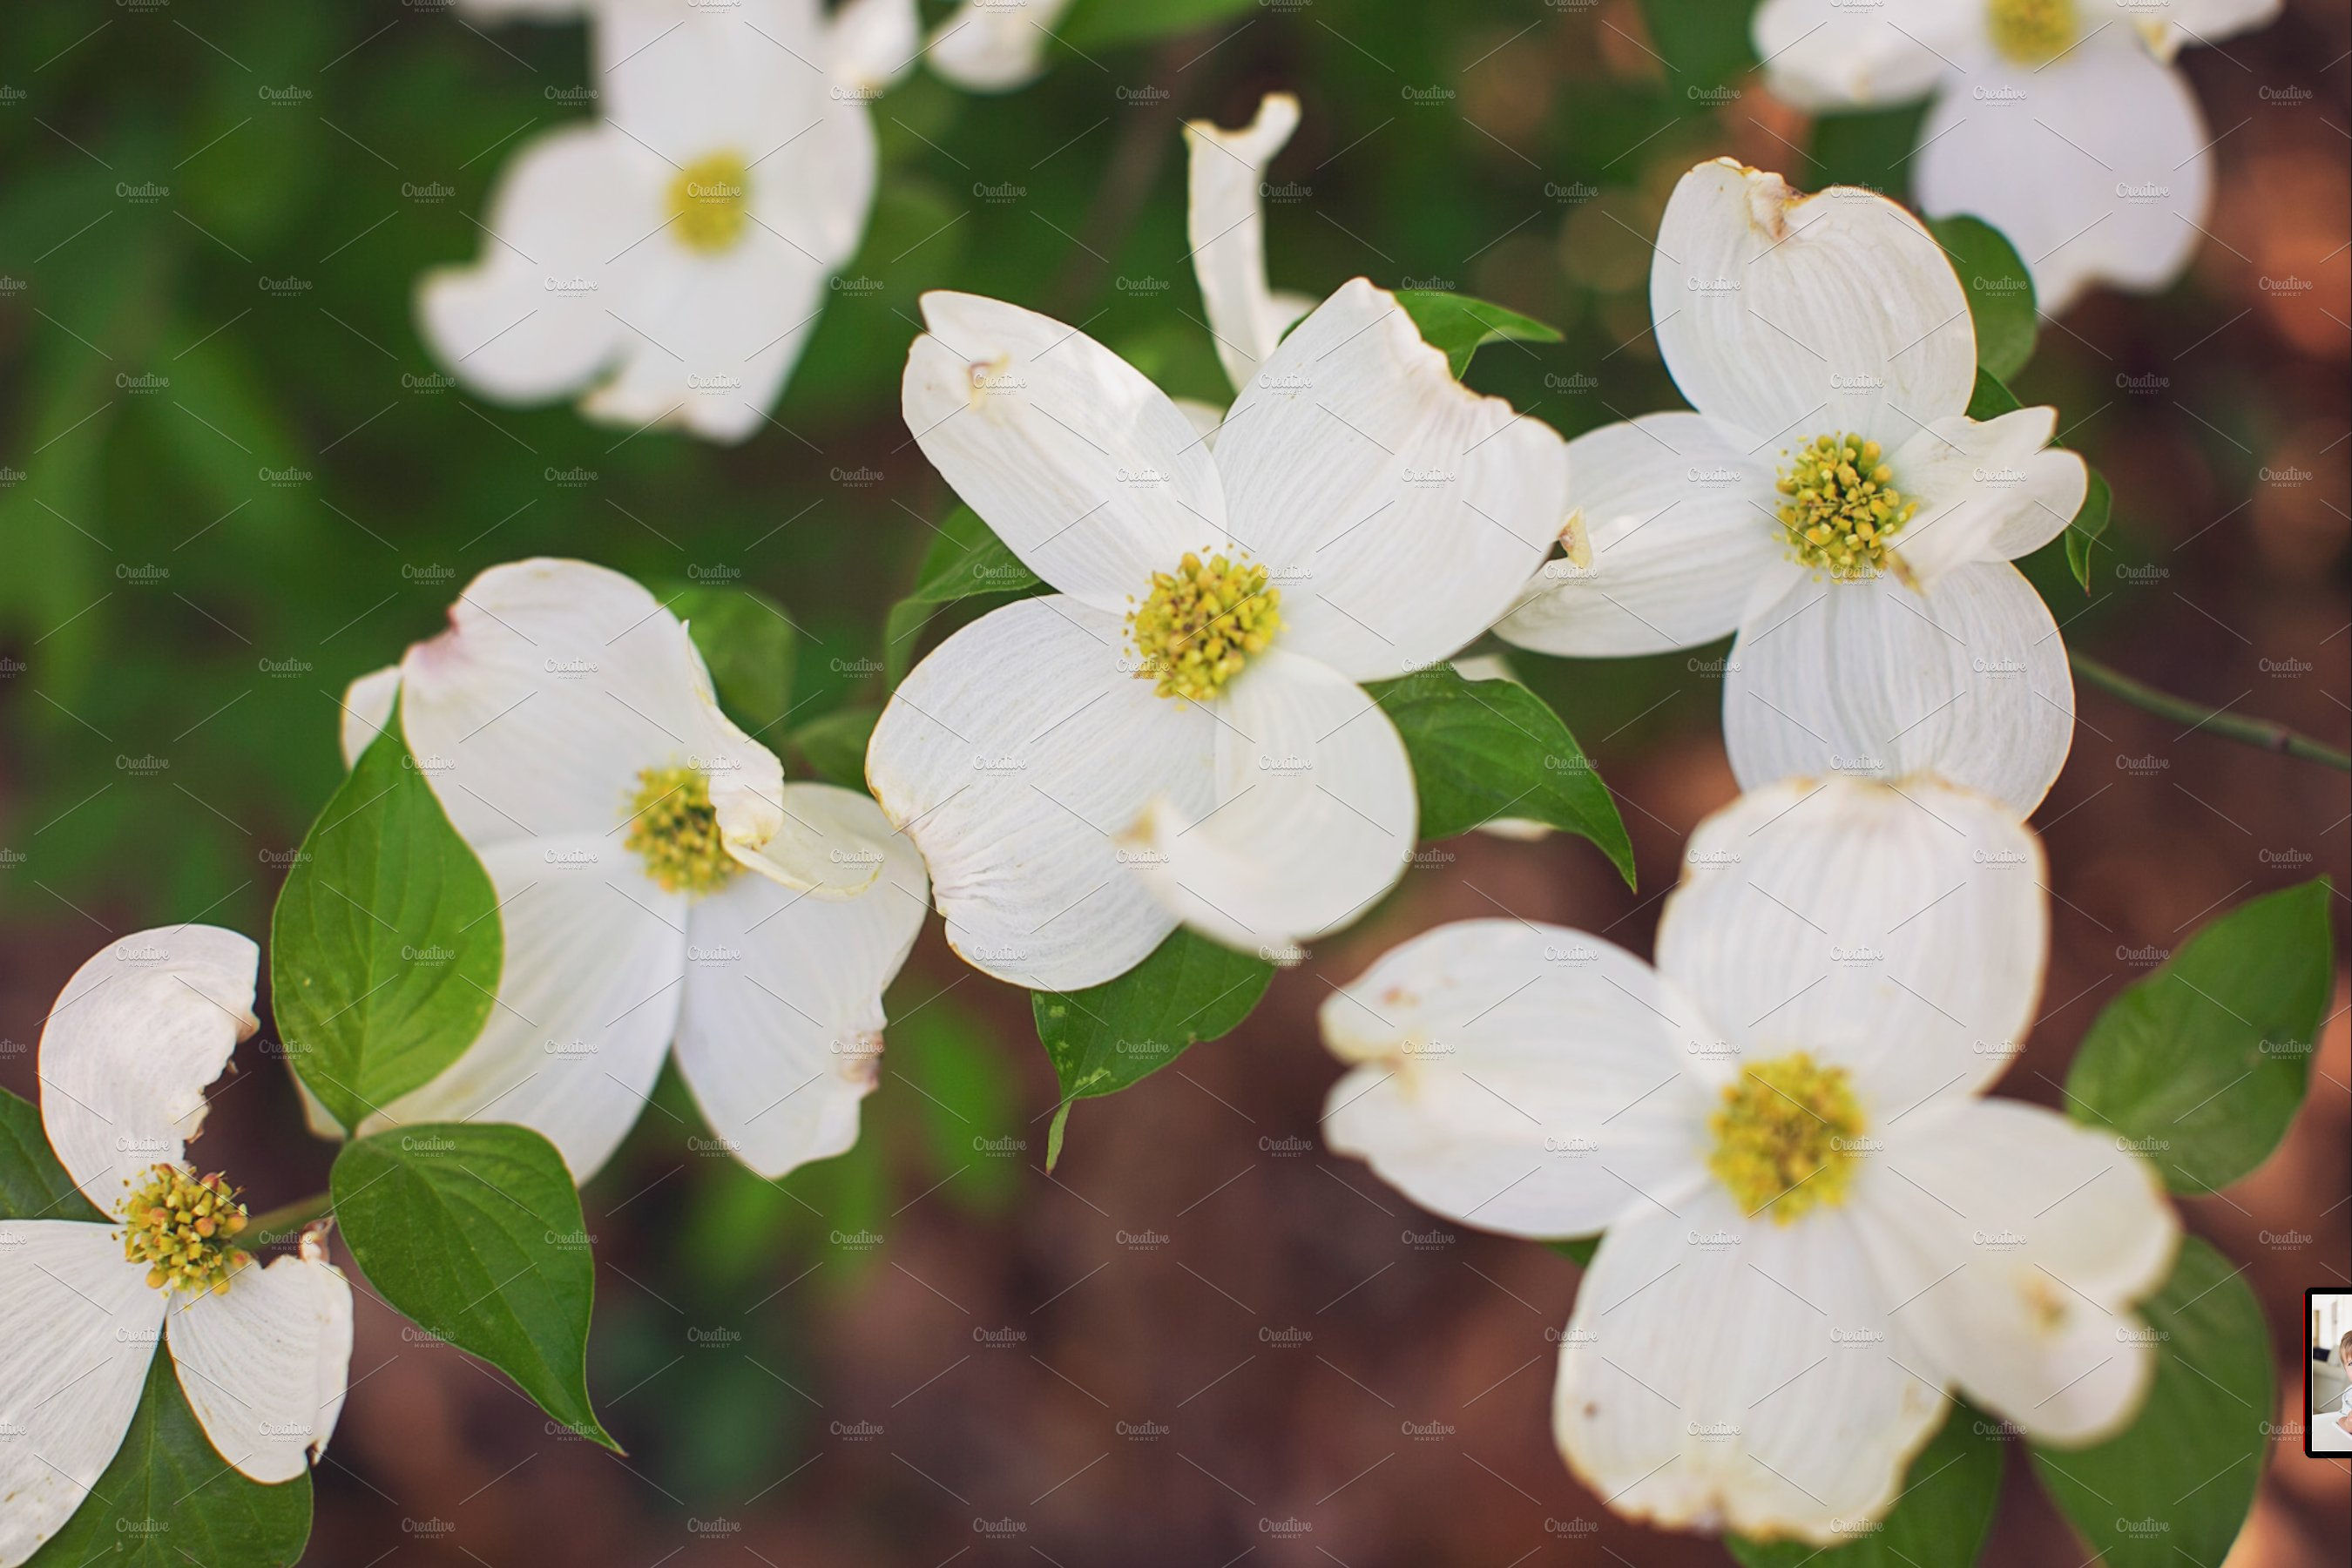 Dogwood Tree White Flowers High Quality Nature Stock Photos